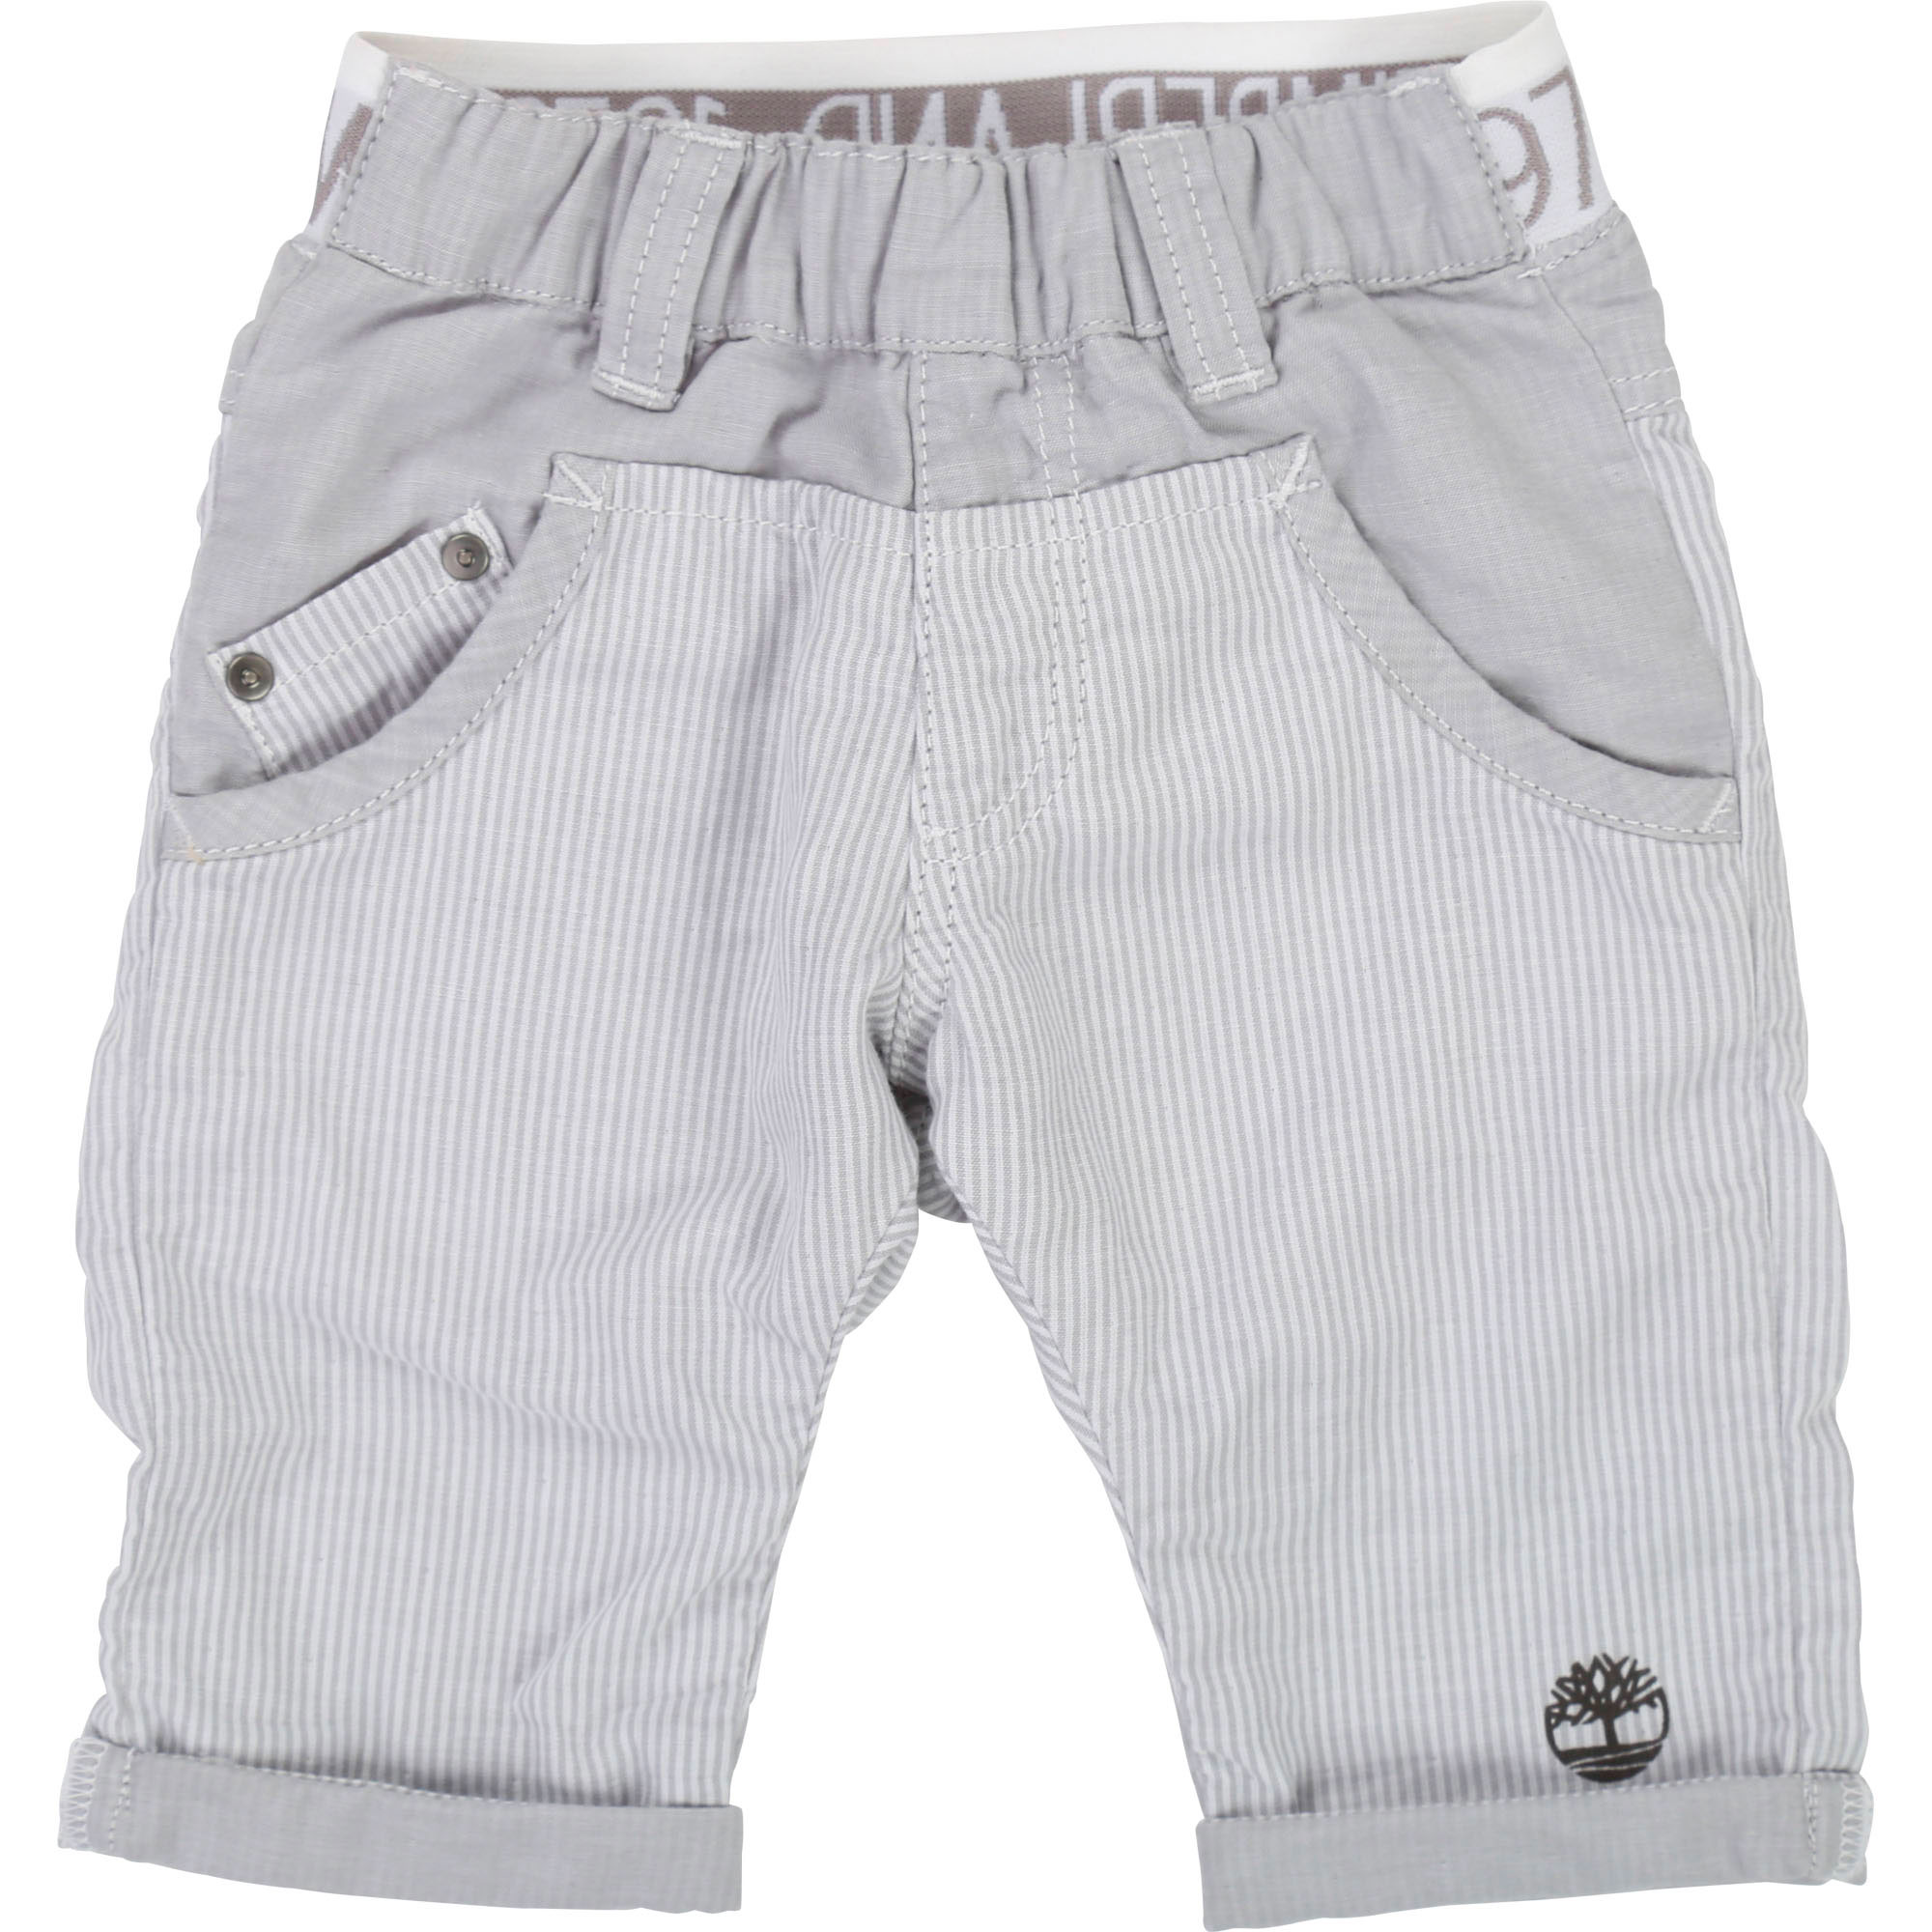 Plain/striped cotton trousers TIMBERLAND for BOY